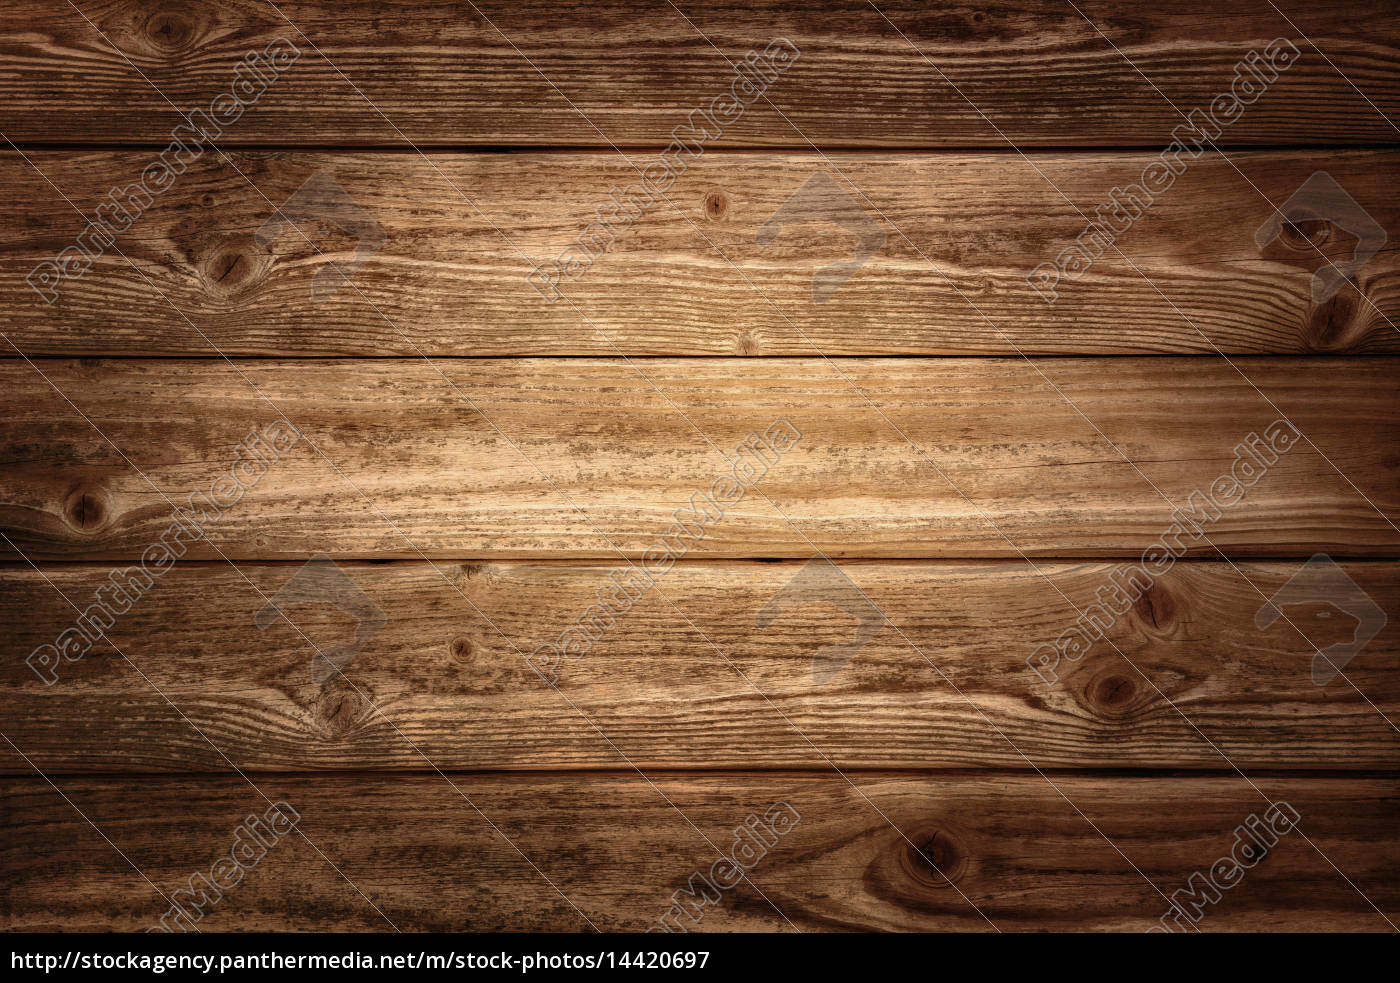 Rustic Wood Planks Background Royalty Free Image